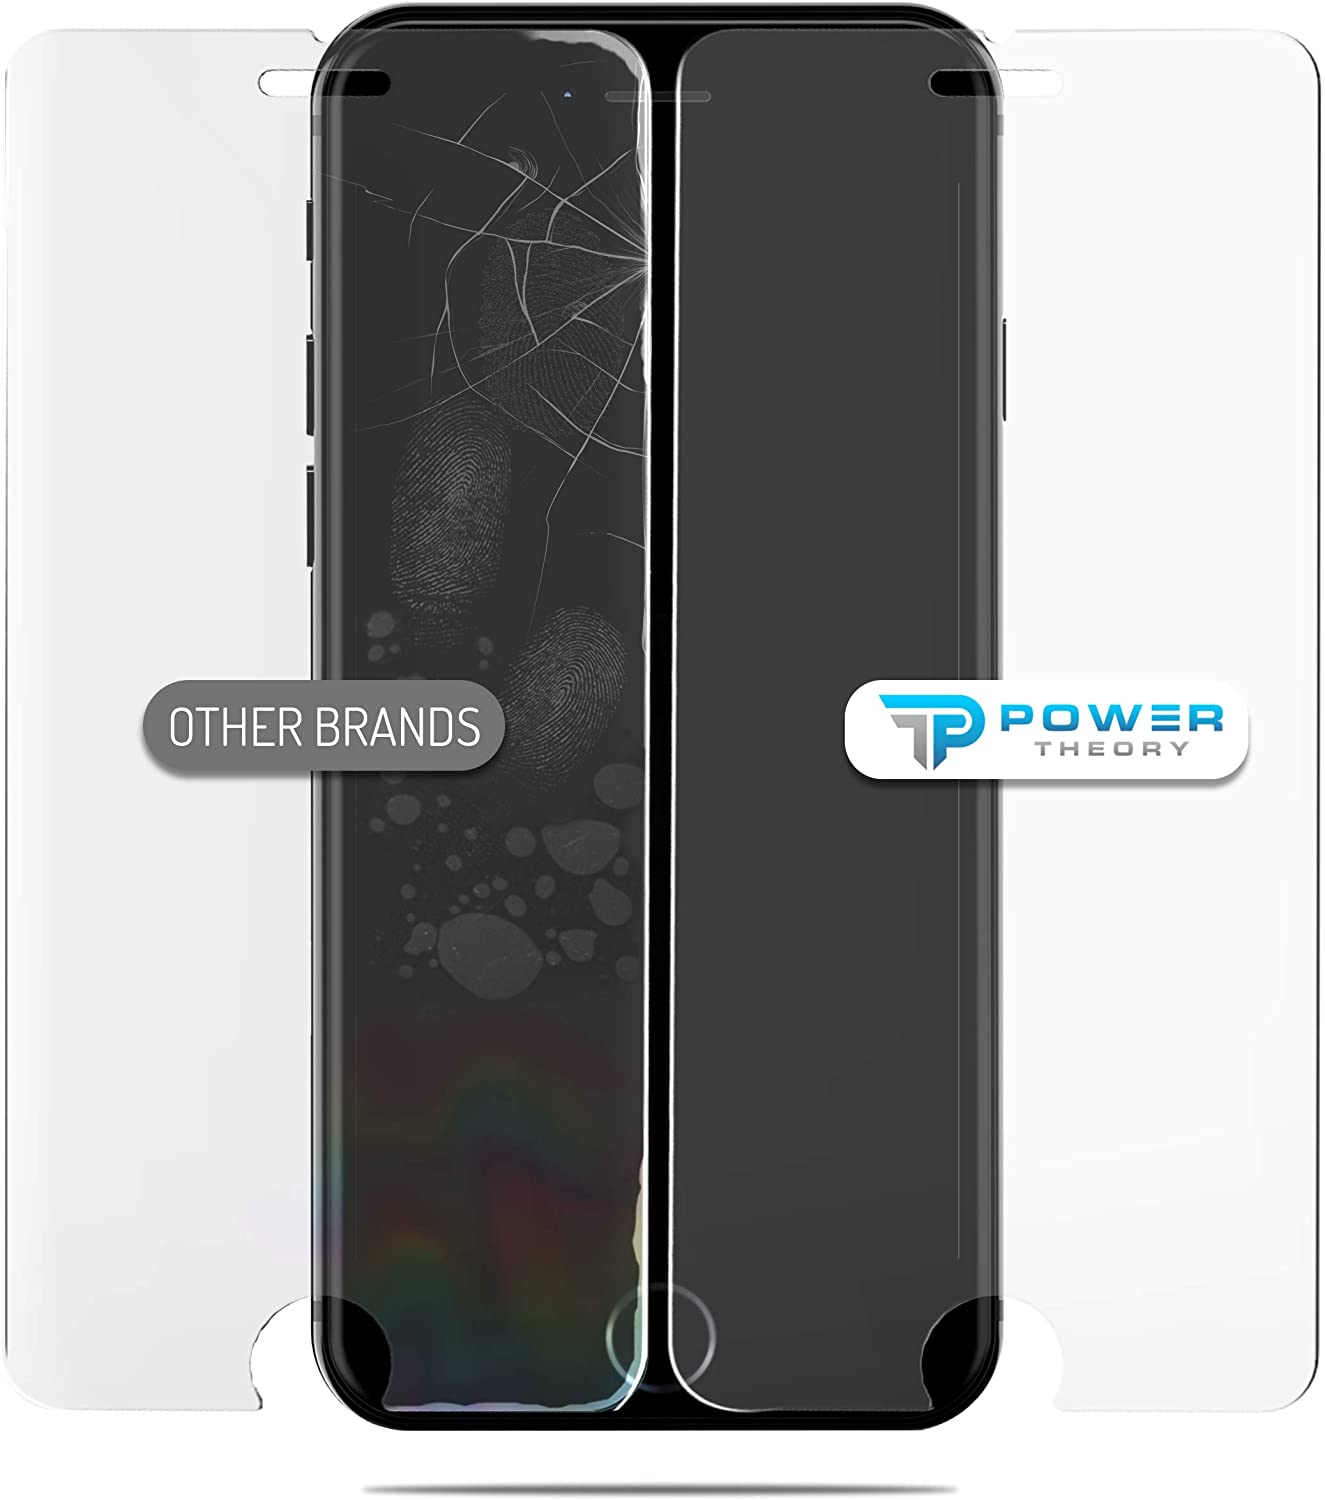 Power Theory Panzerglas kompatibel mit iPhone 8/iPhone 7 [2 Stück]